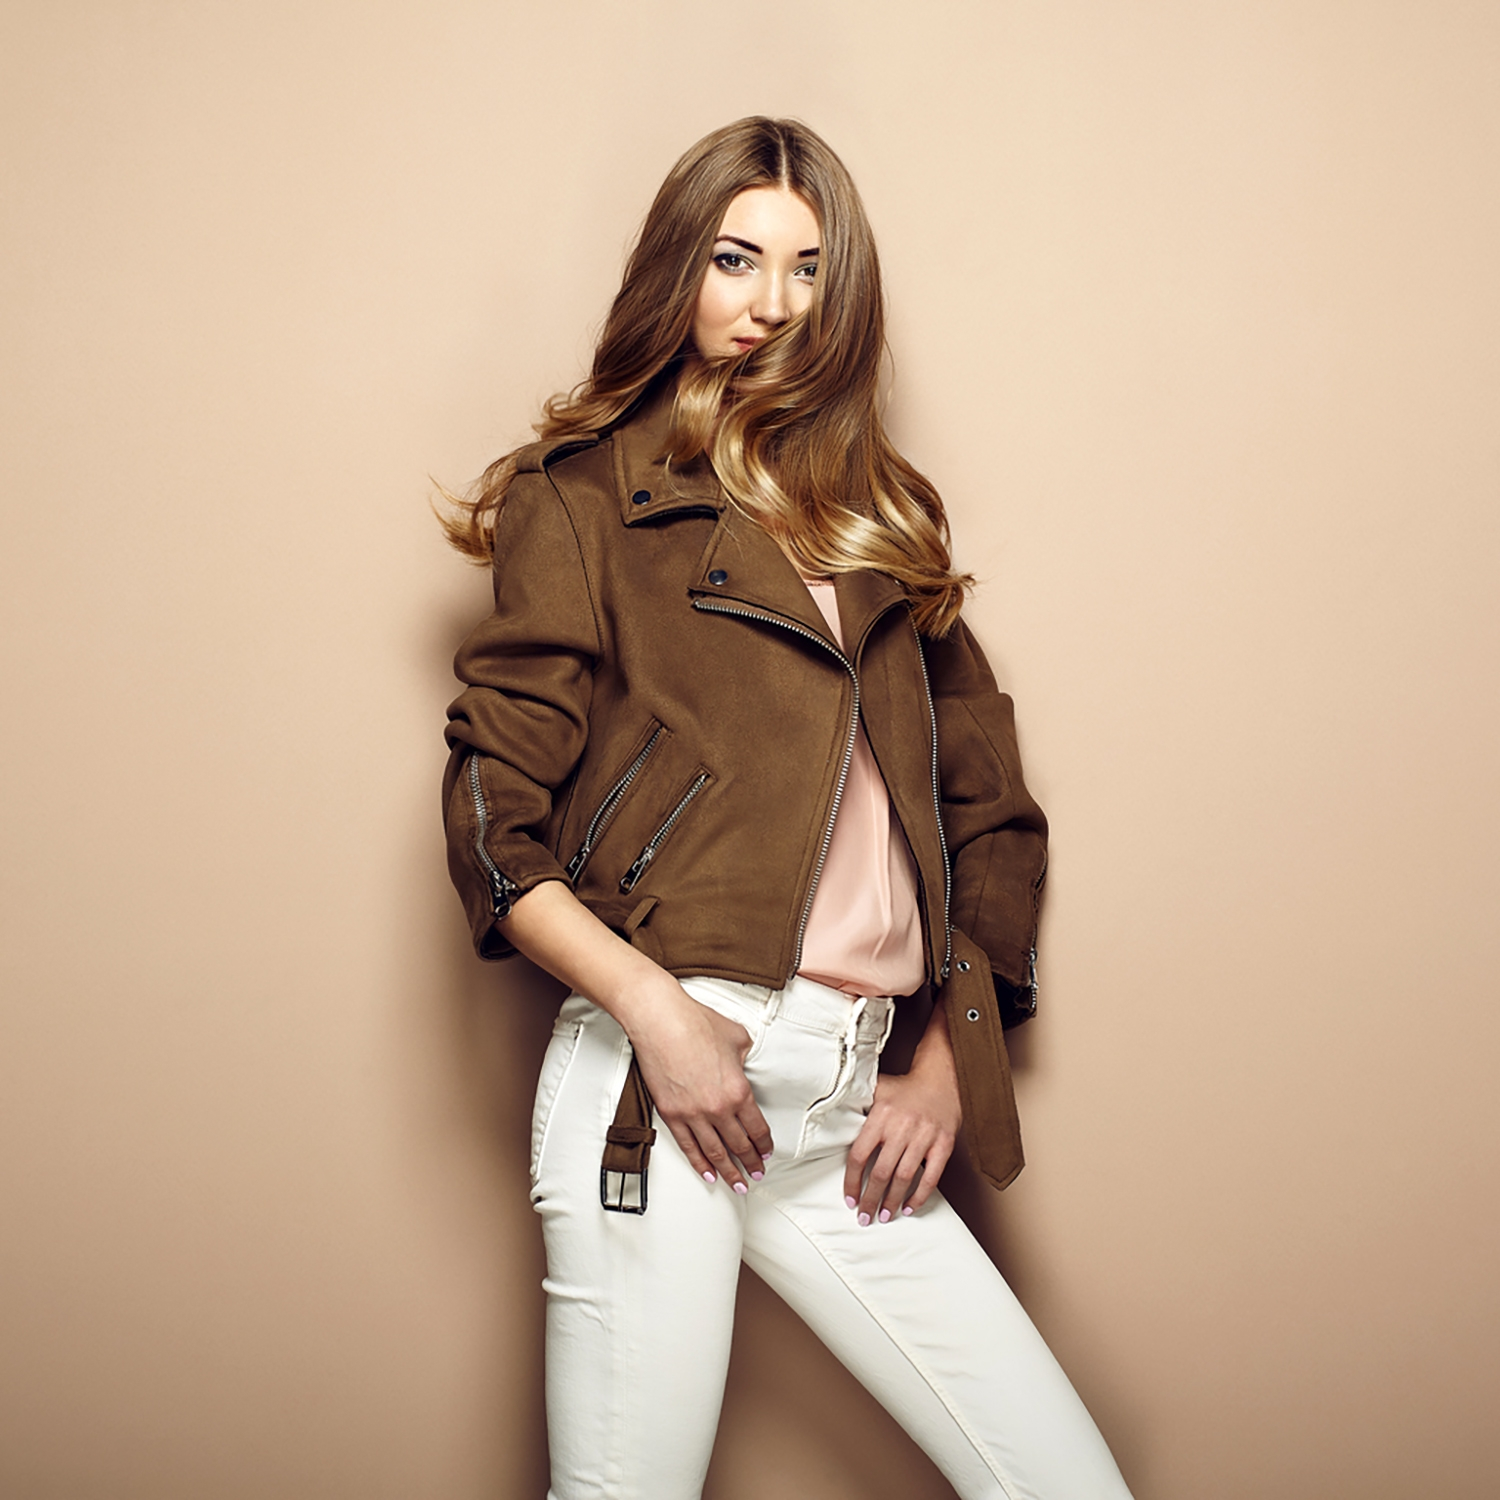 Beautiful woman wearing a brown leather jacket